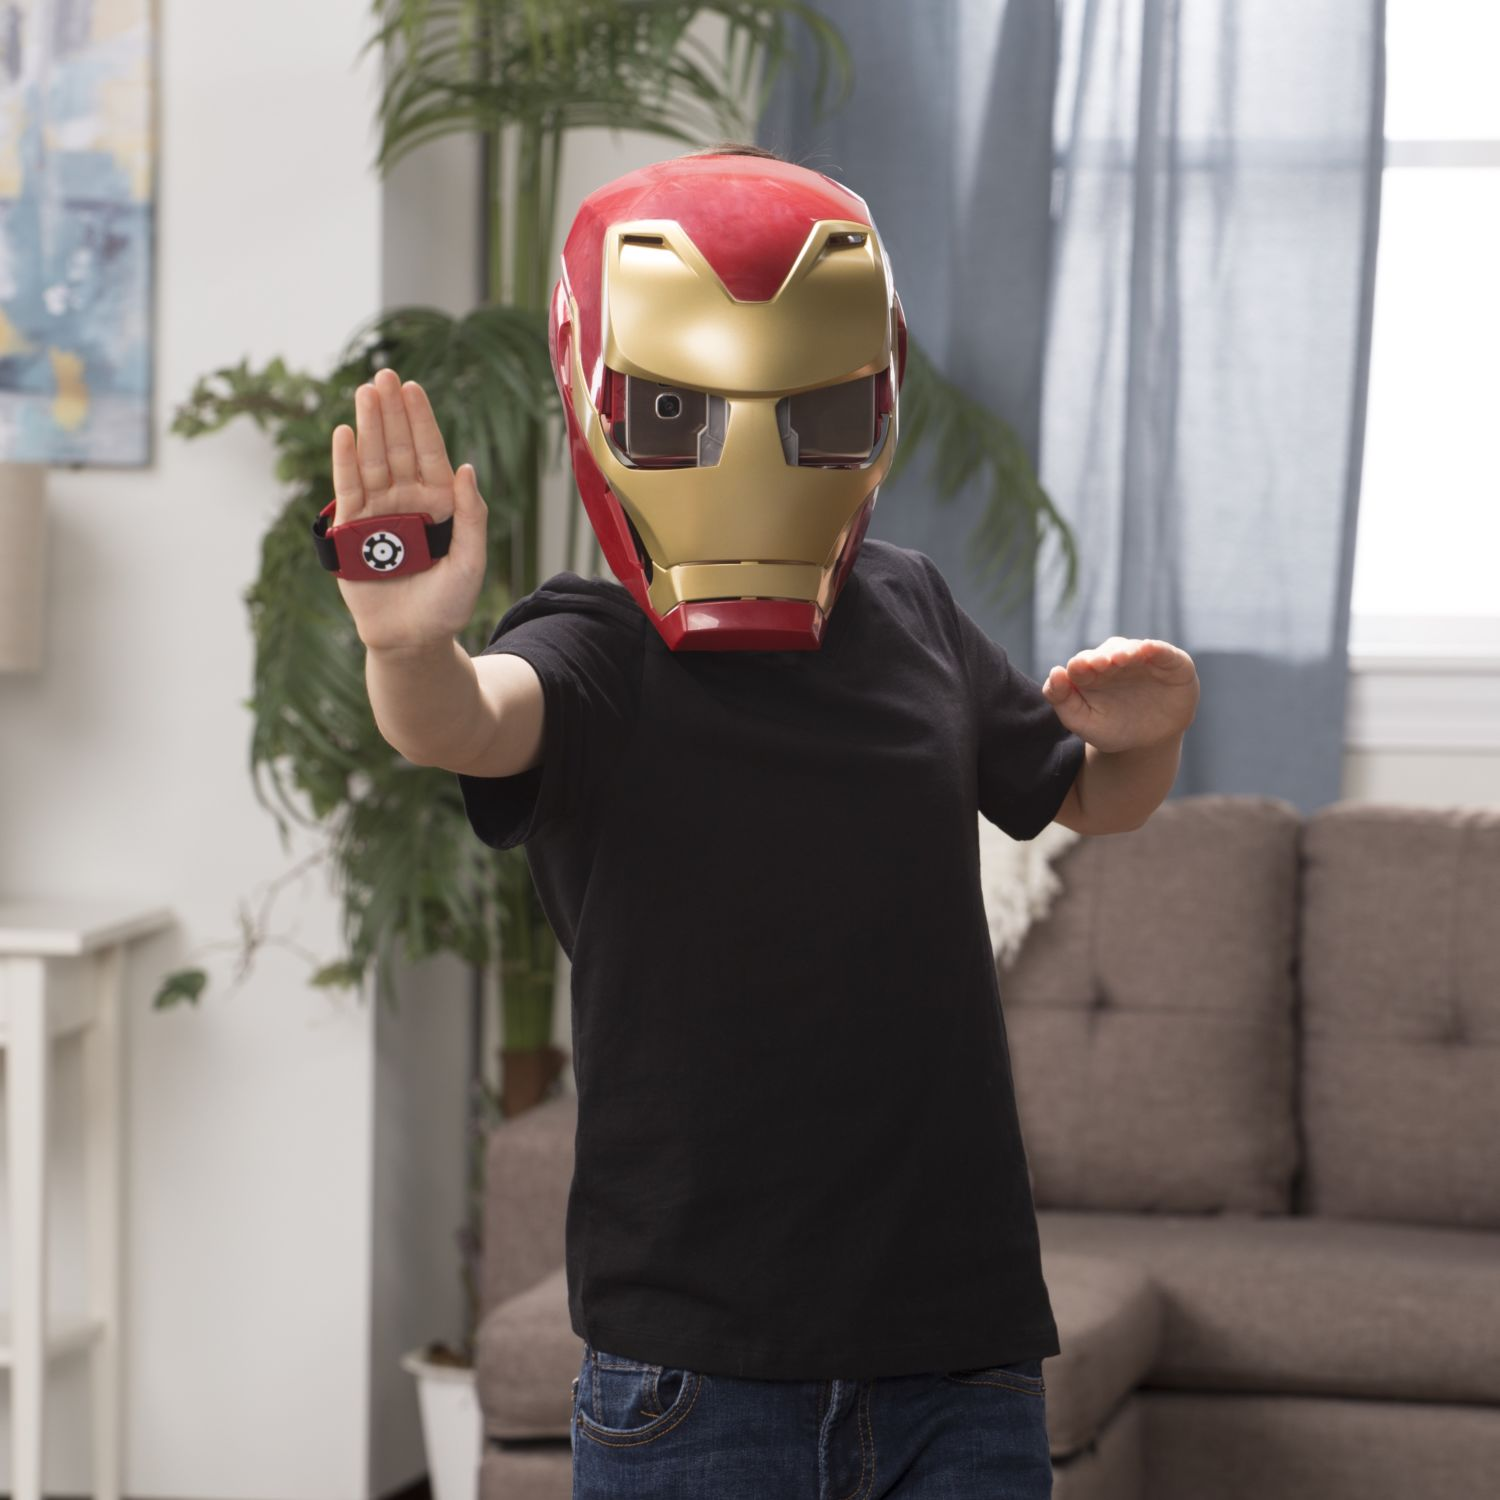 Hasbro To Launch Iron Man Ar Role Play Experience